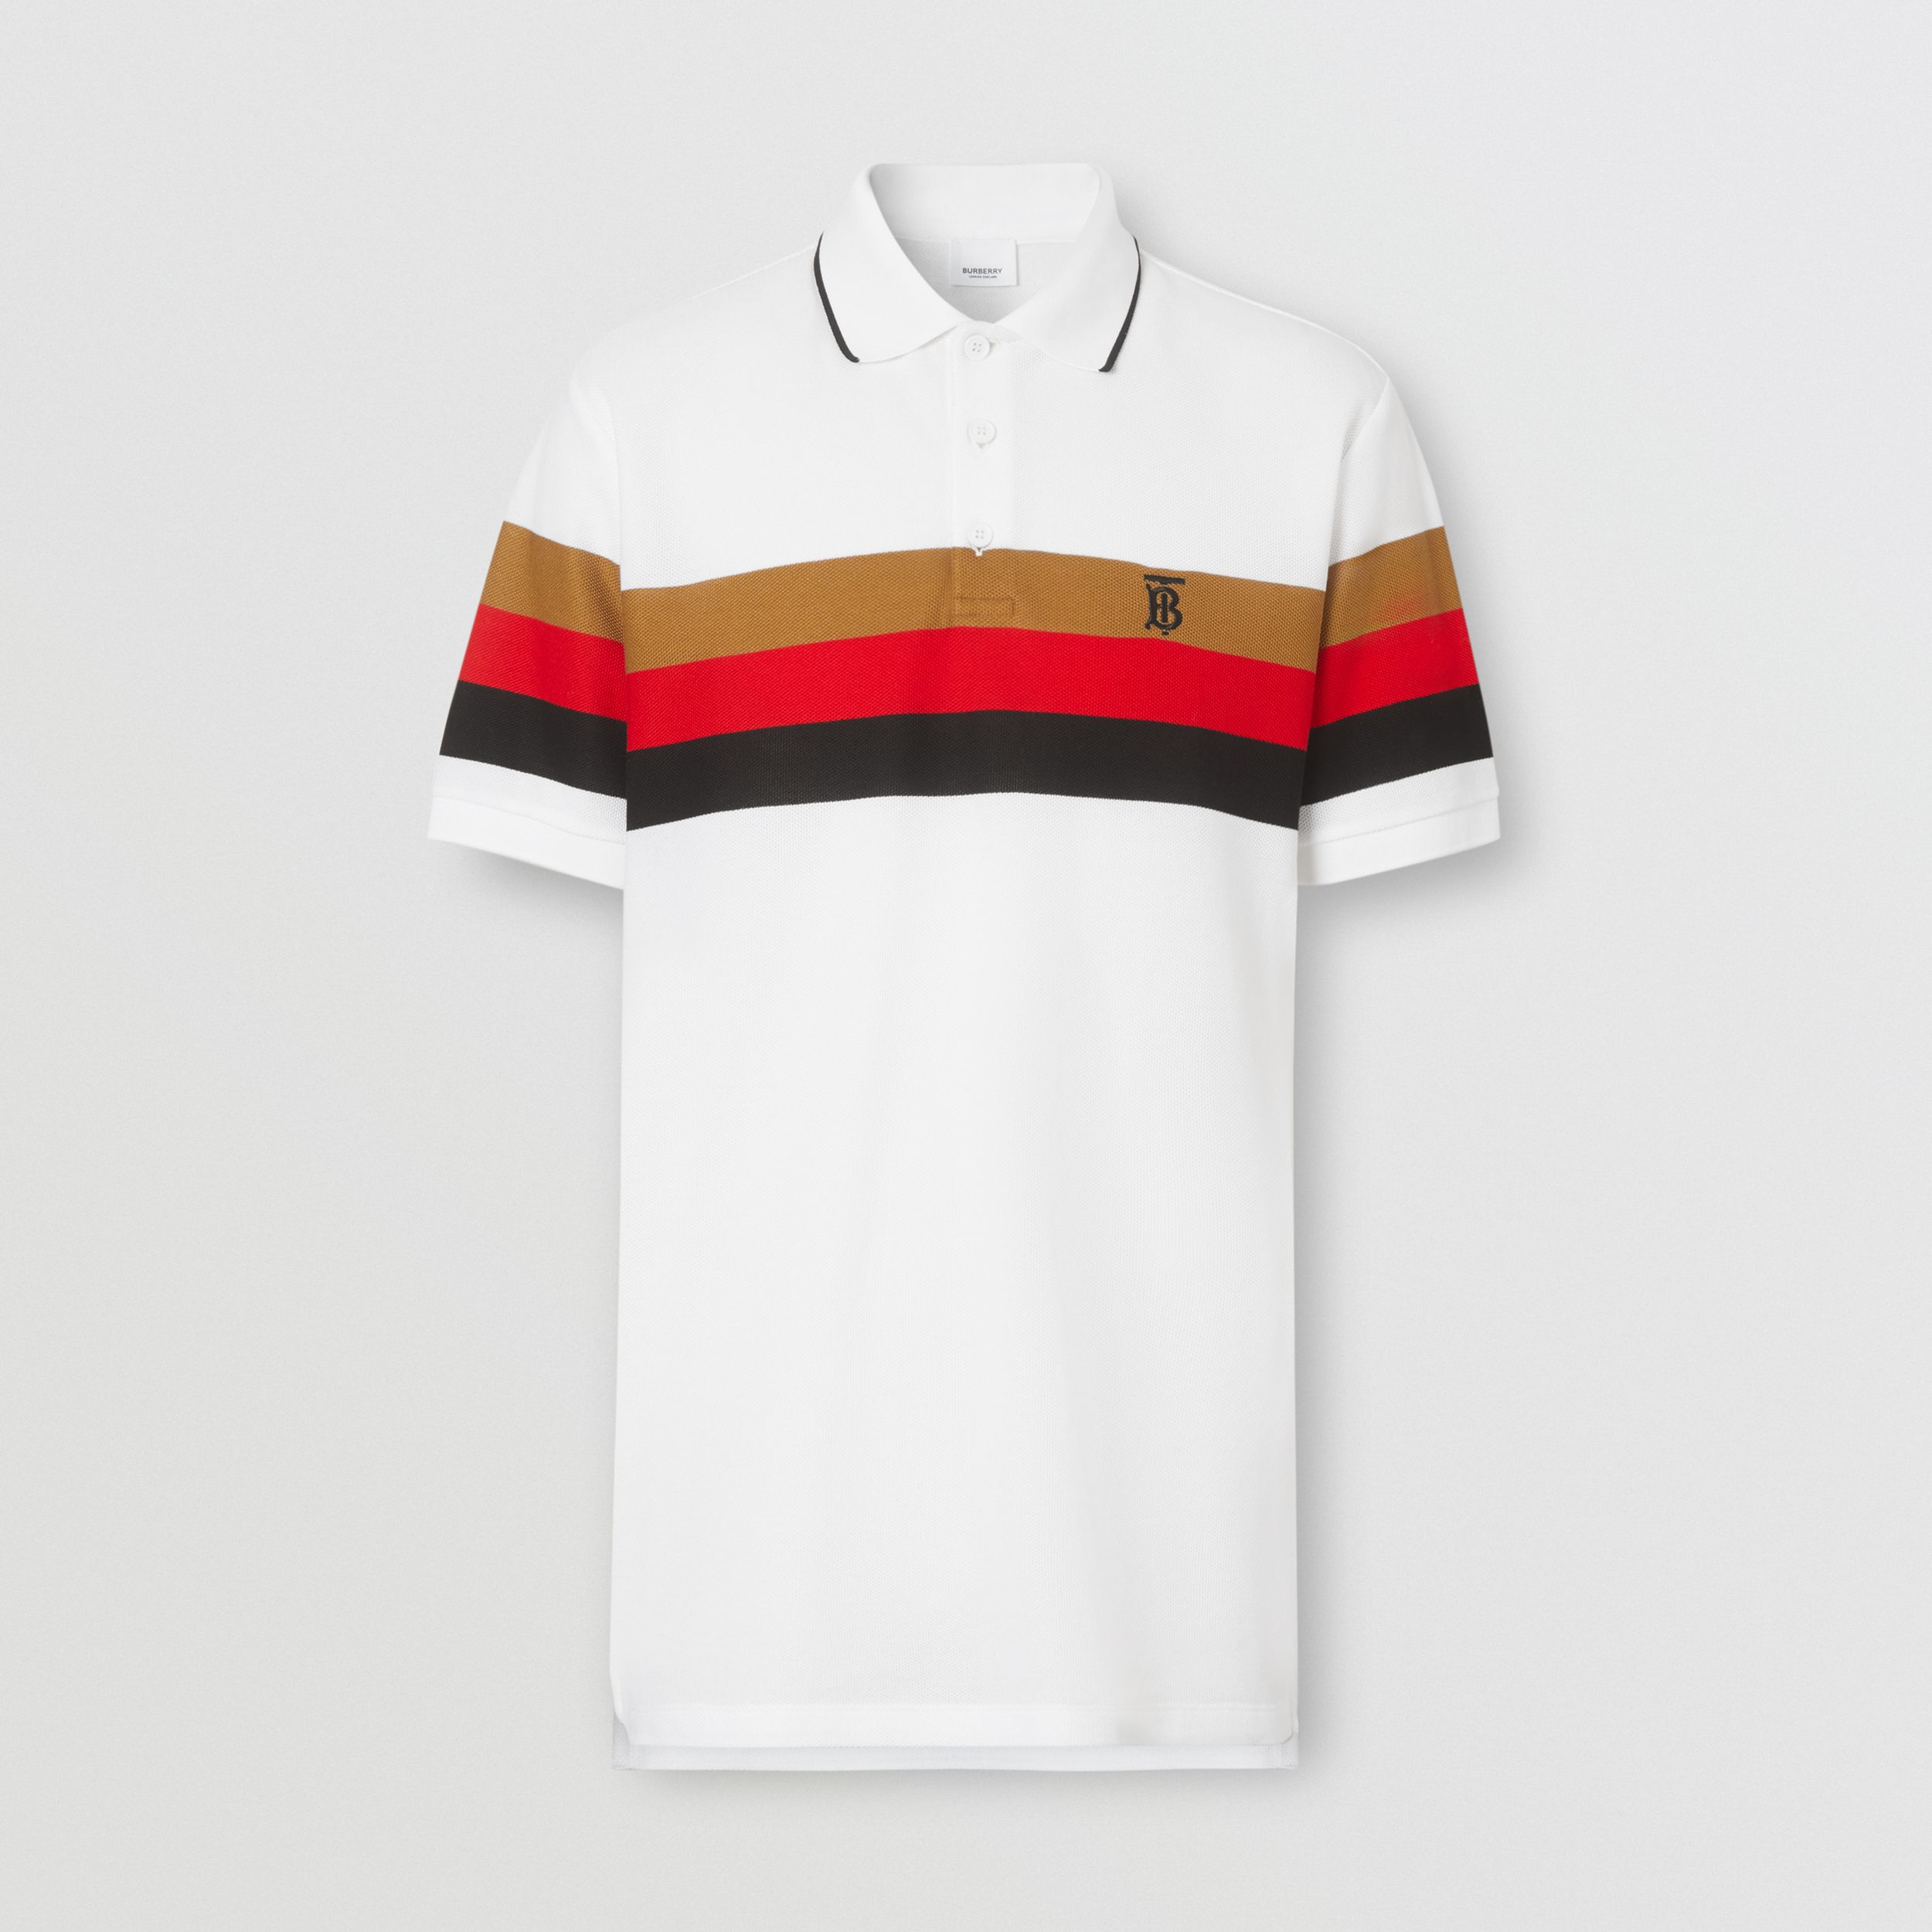 Monogram Motif Striped Cotton Polo Shirt in White - Men | Burberry - 4